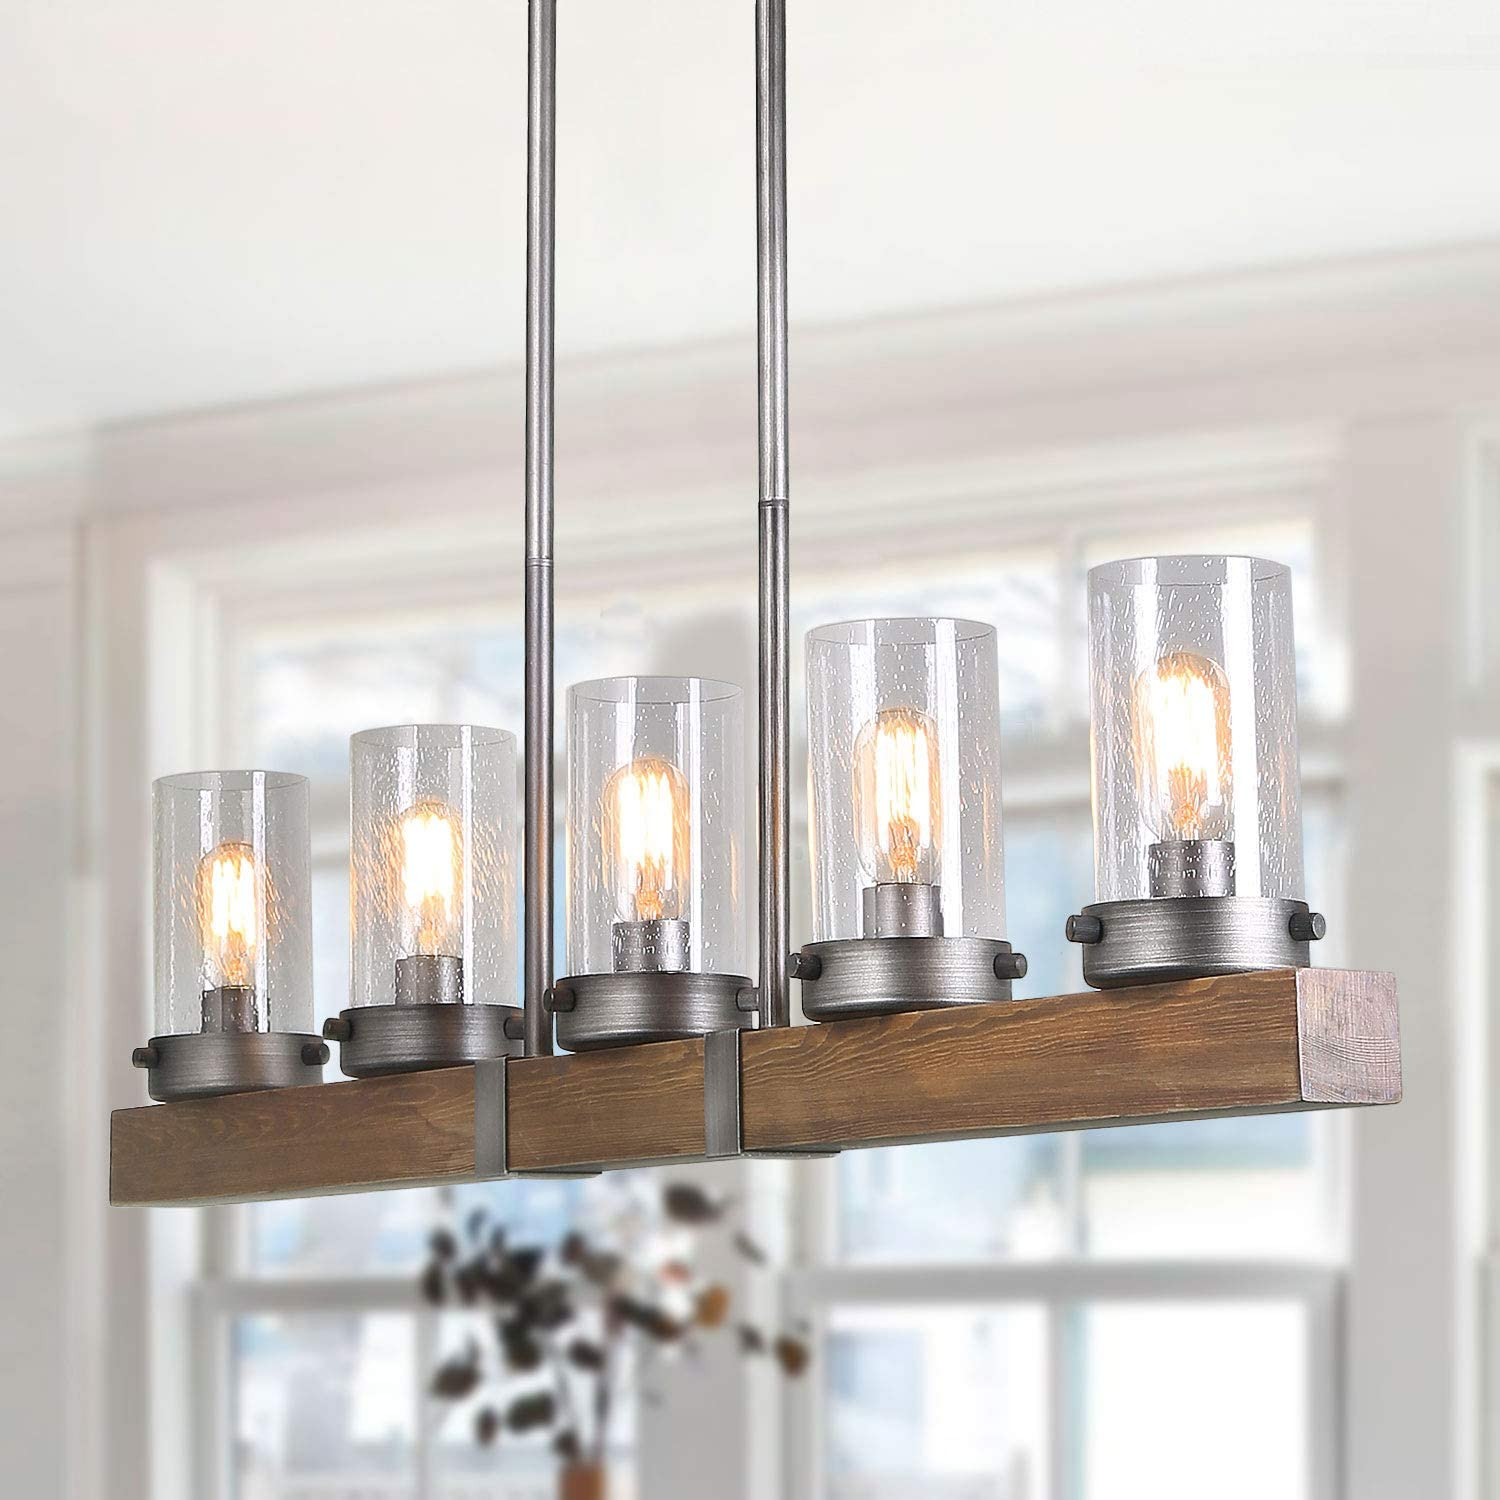 """Farmhouse Wood Chandelier, 5-Light Linear Chandeliers for Dining Rooms, L42.9 x W3.9""""x H9.4"""""""